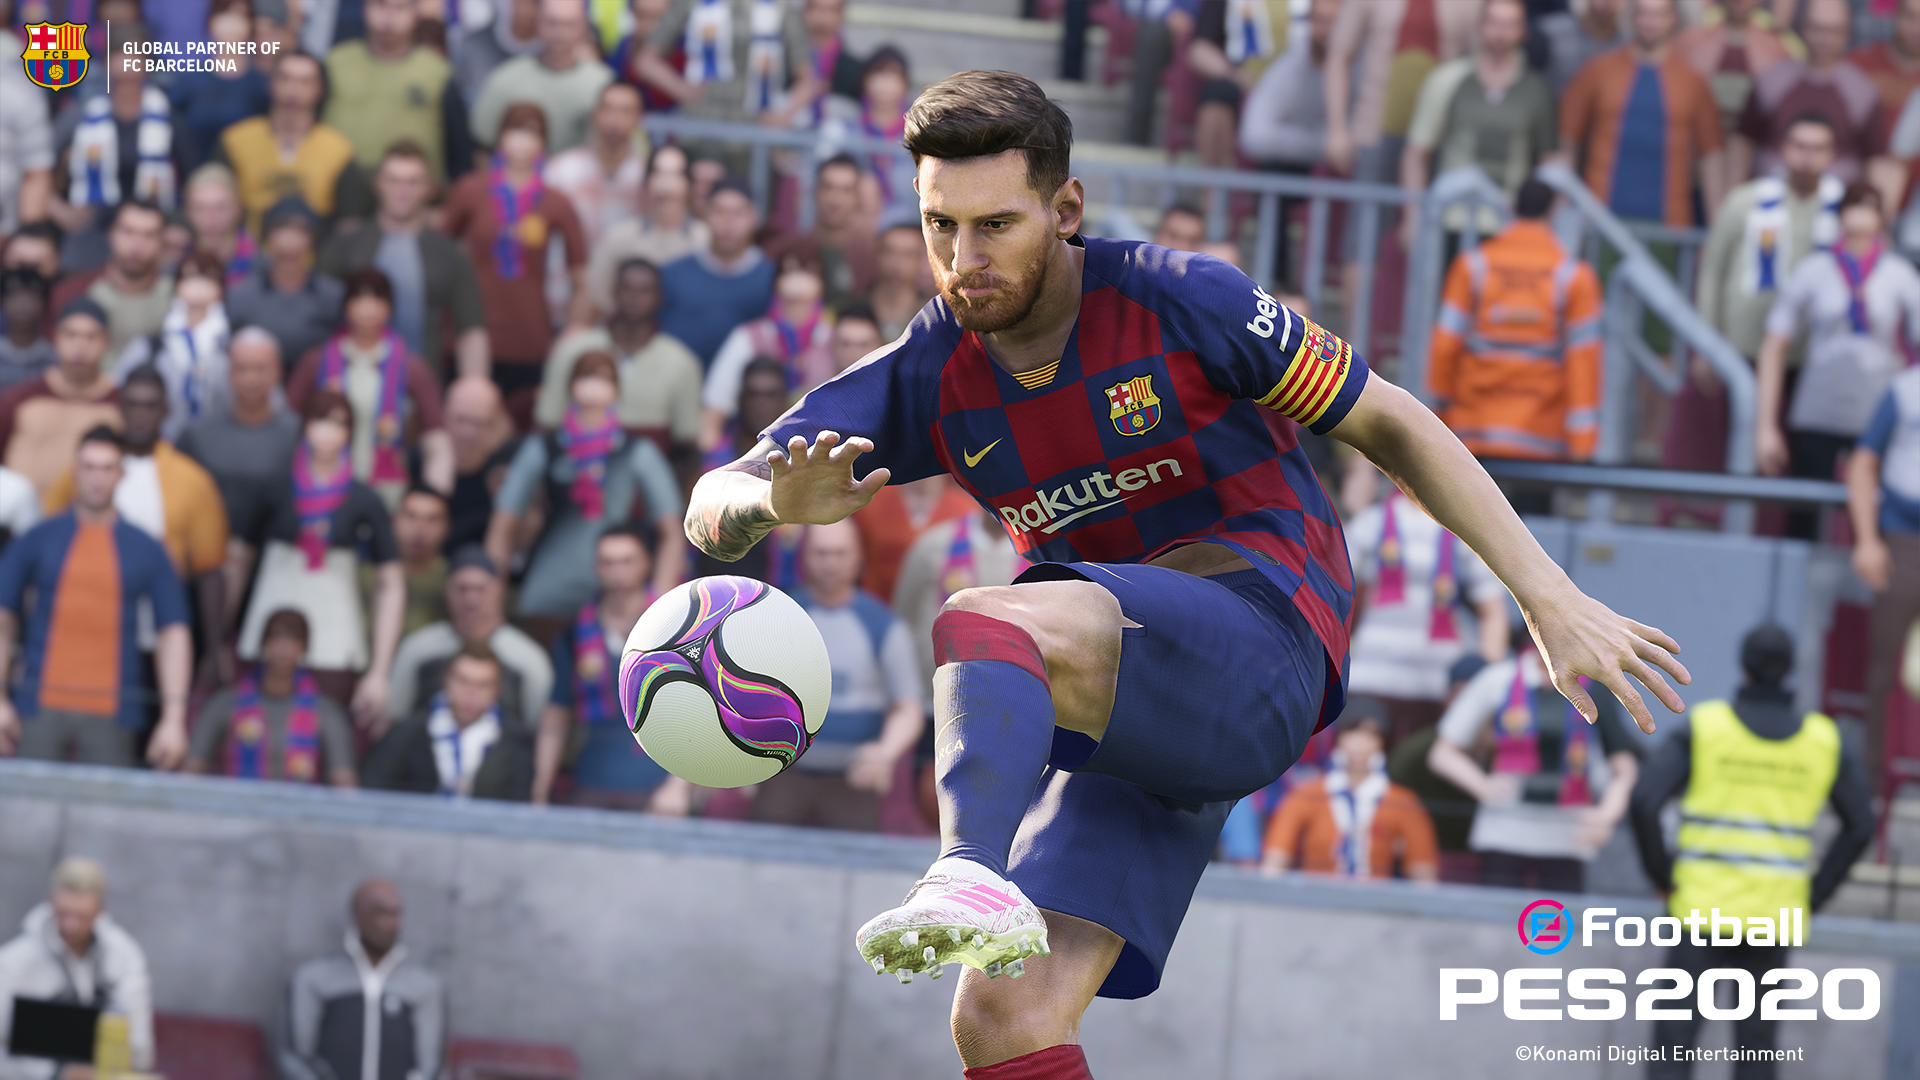 EFootball PES 2020 Hands On Proves Mixed News For Hard